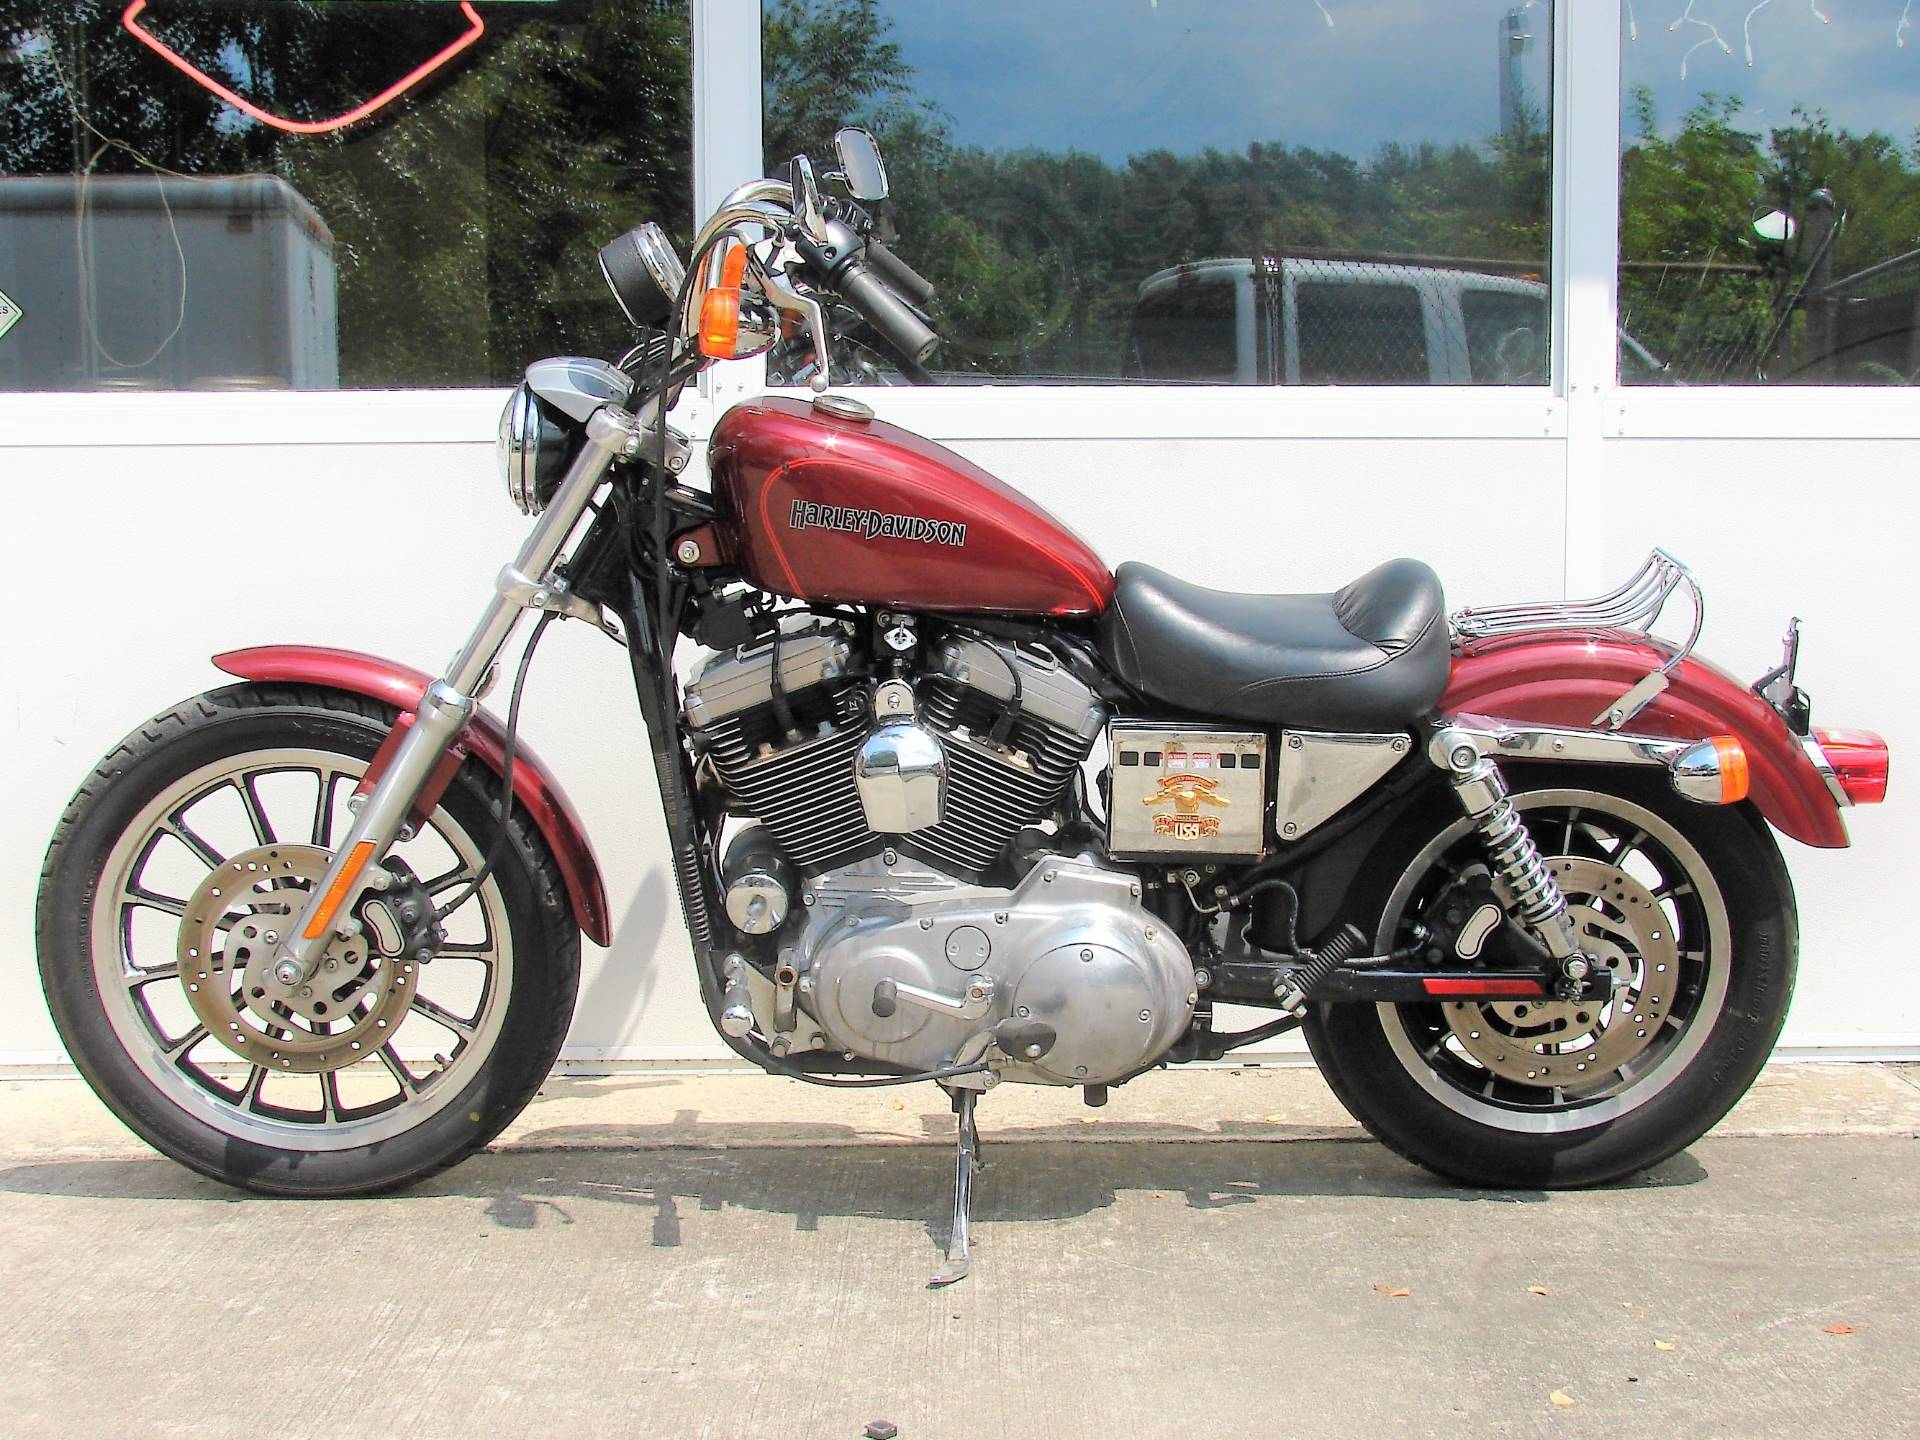 2001 Harley-Davidson XL 1200 Sportster  (EVO) in Williamstown, New Jersey - Photo 7